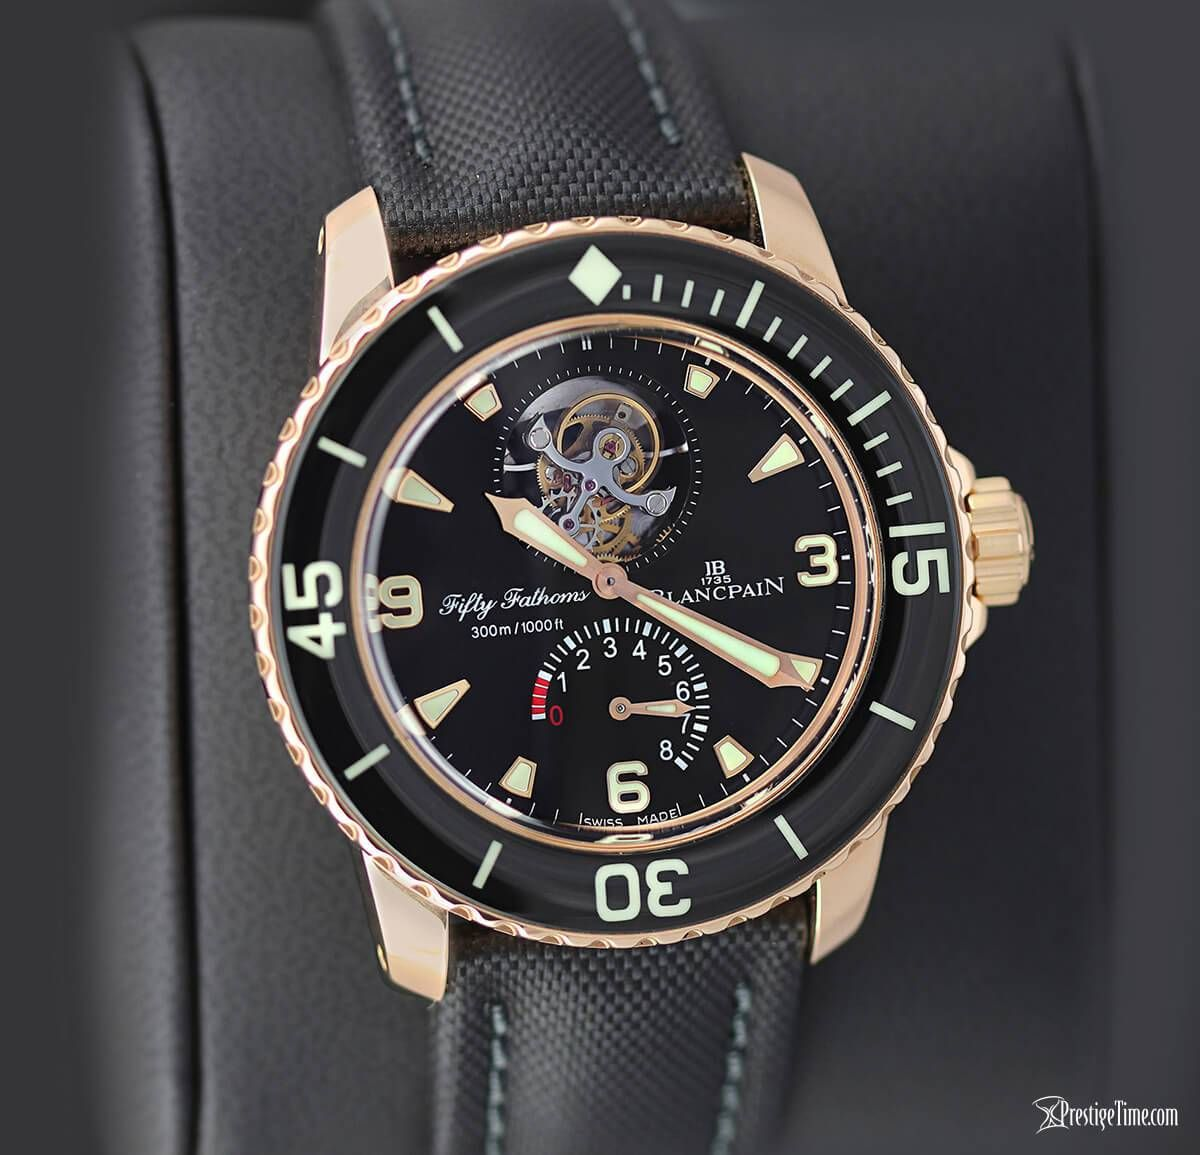 Blancpain Fifty Fathoms Tourbillon 8 Days Review Fifty Fathoms Blancpain Tourbillon